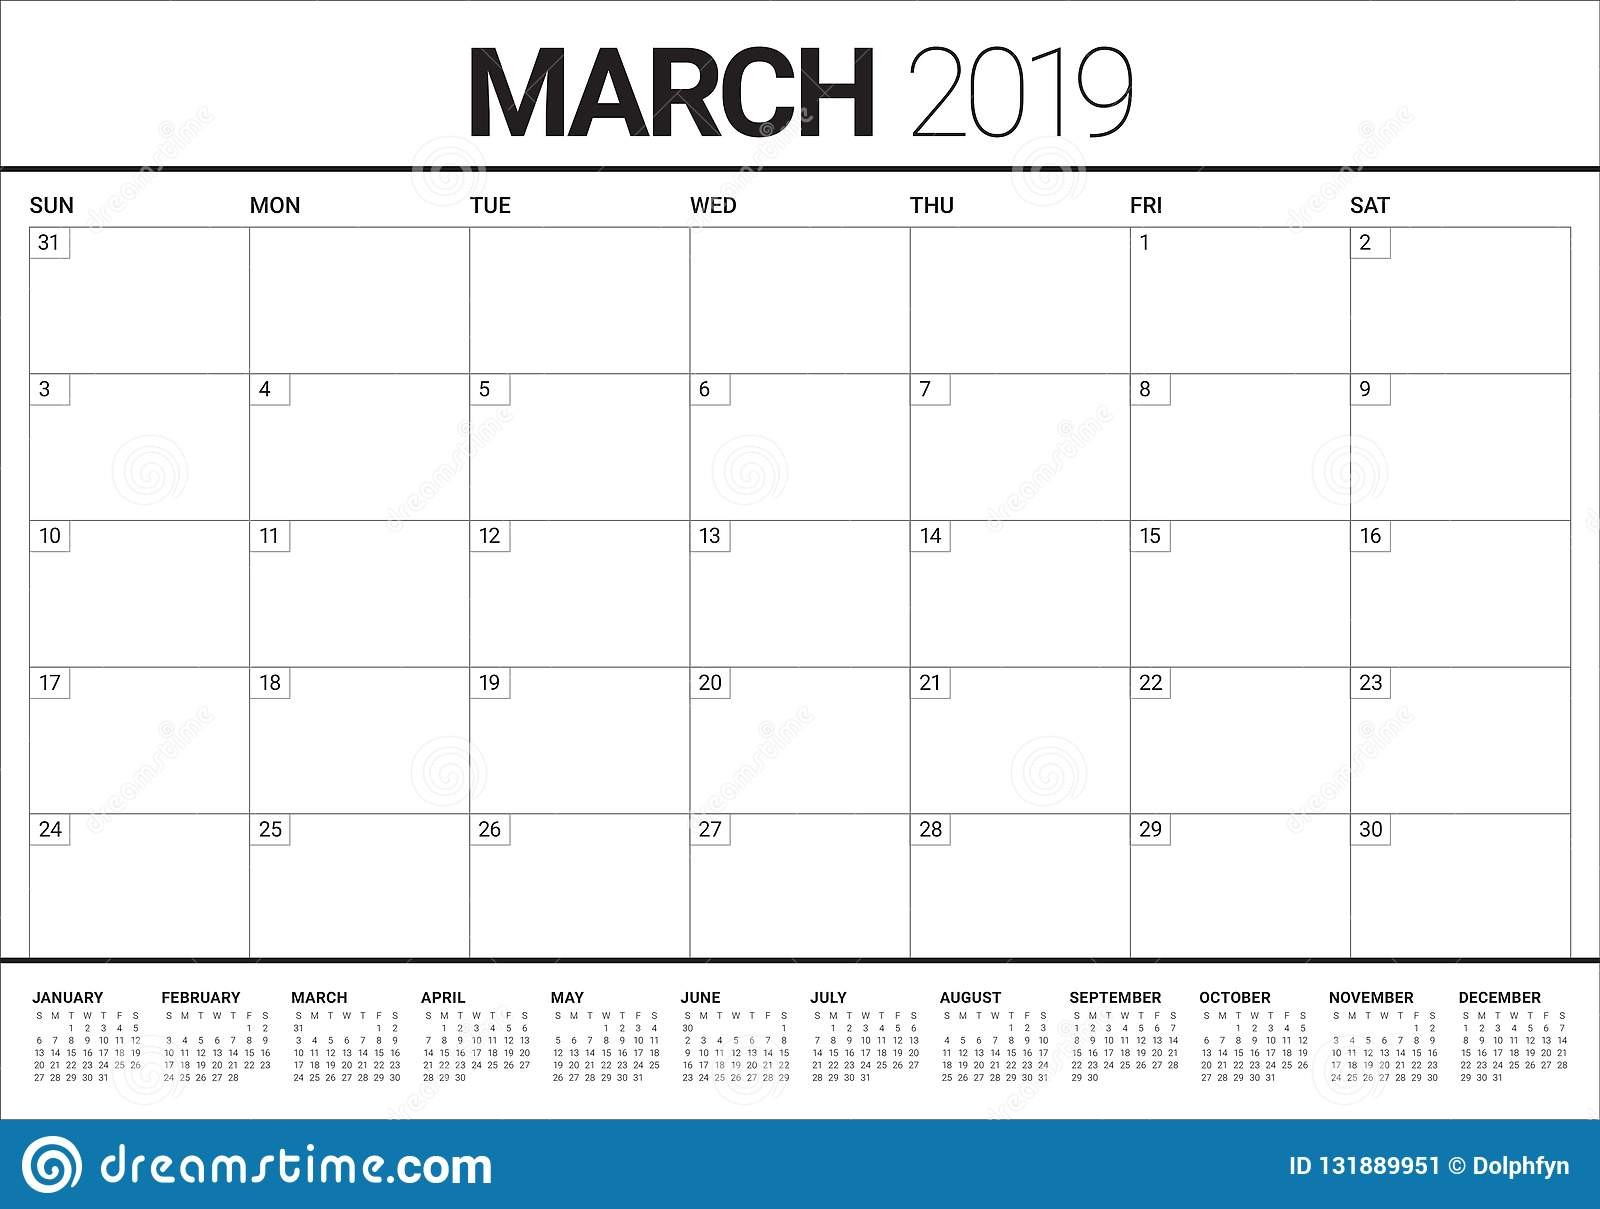 March Calendar 2019 Más Recientemente Liberado March 2019 Desk Calendar Vector Illustration Stock Vector Of March Calendar 2019 Más Actual Odia Calendar 2019 with March Odishain